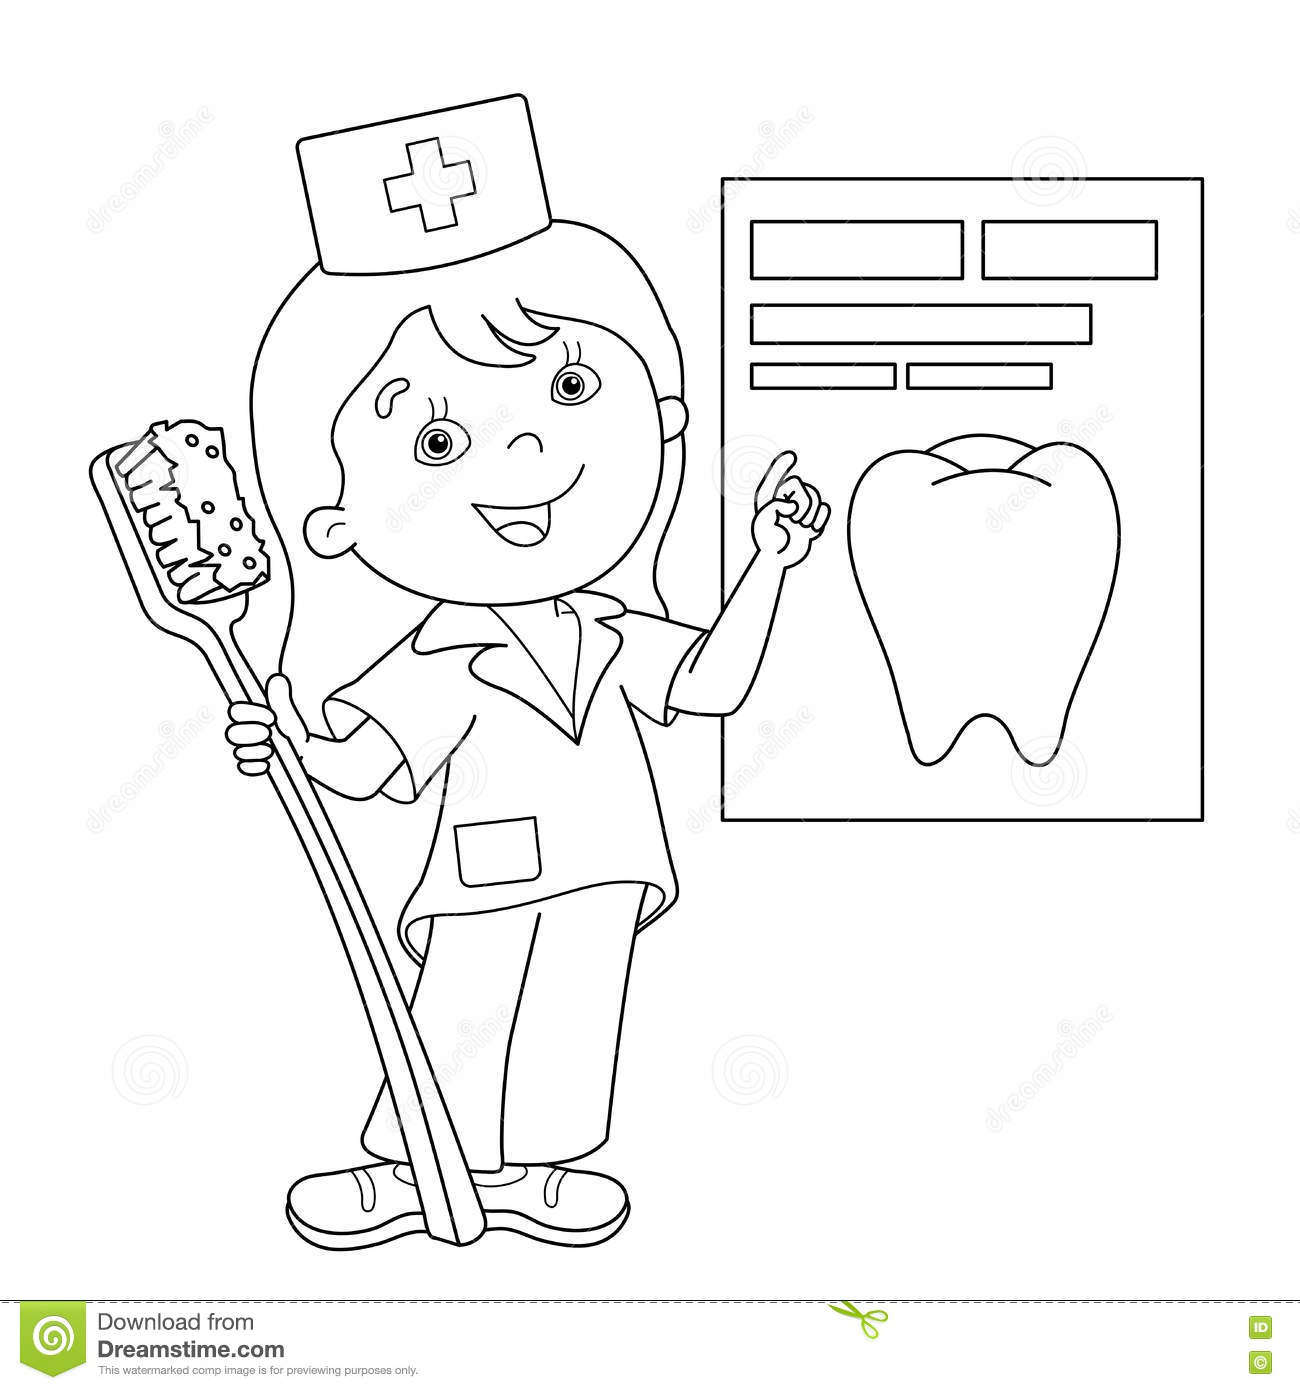 Coloring pages nurse - Coloring Page Outline Of Cartoon Doctor With A Toothbrush Royalty Free Stock Images